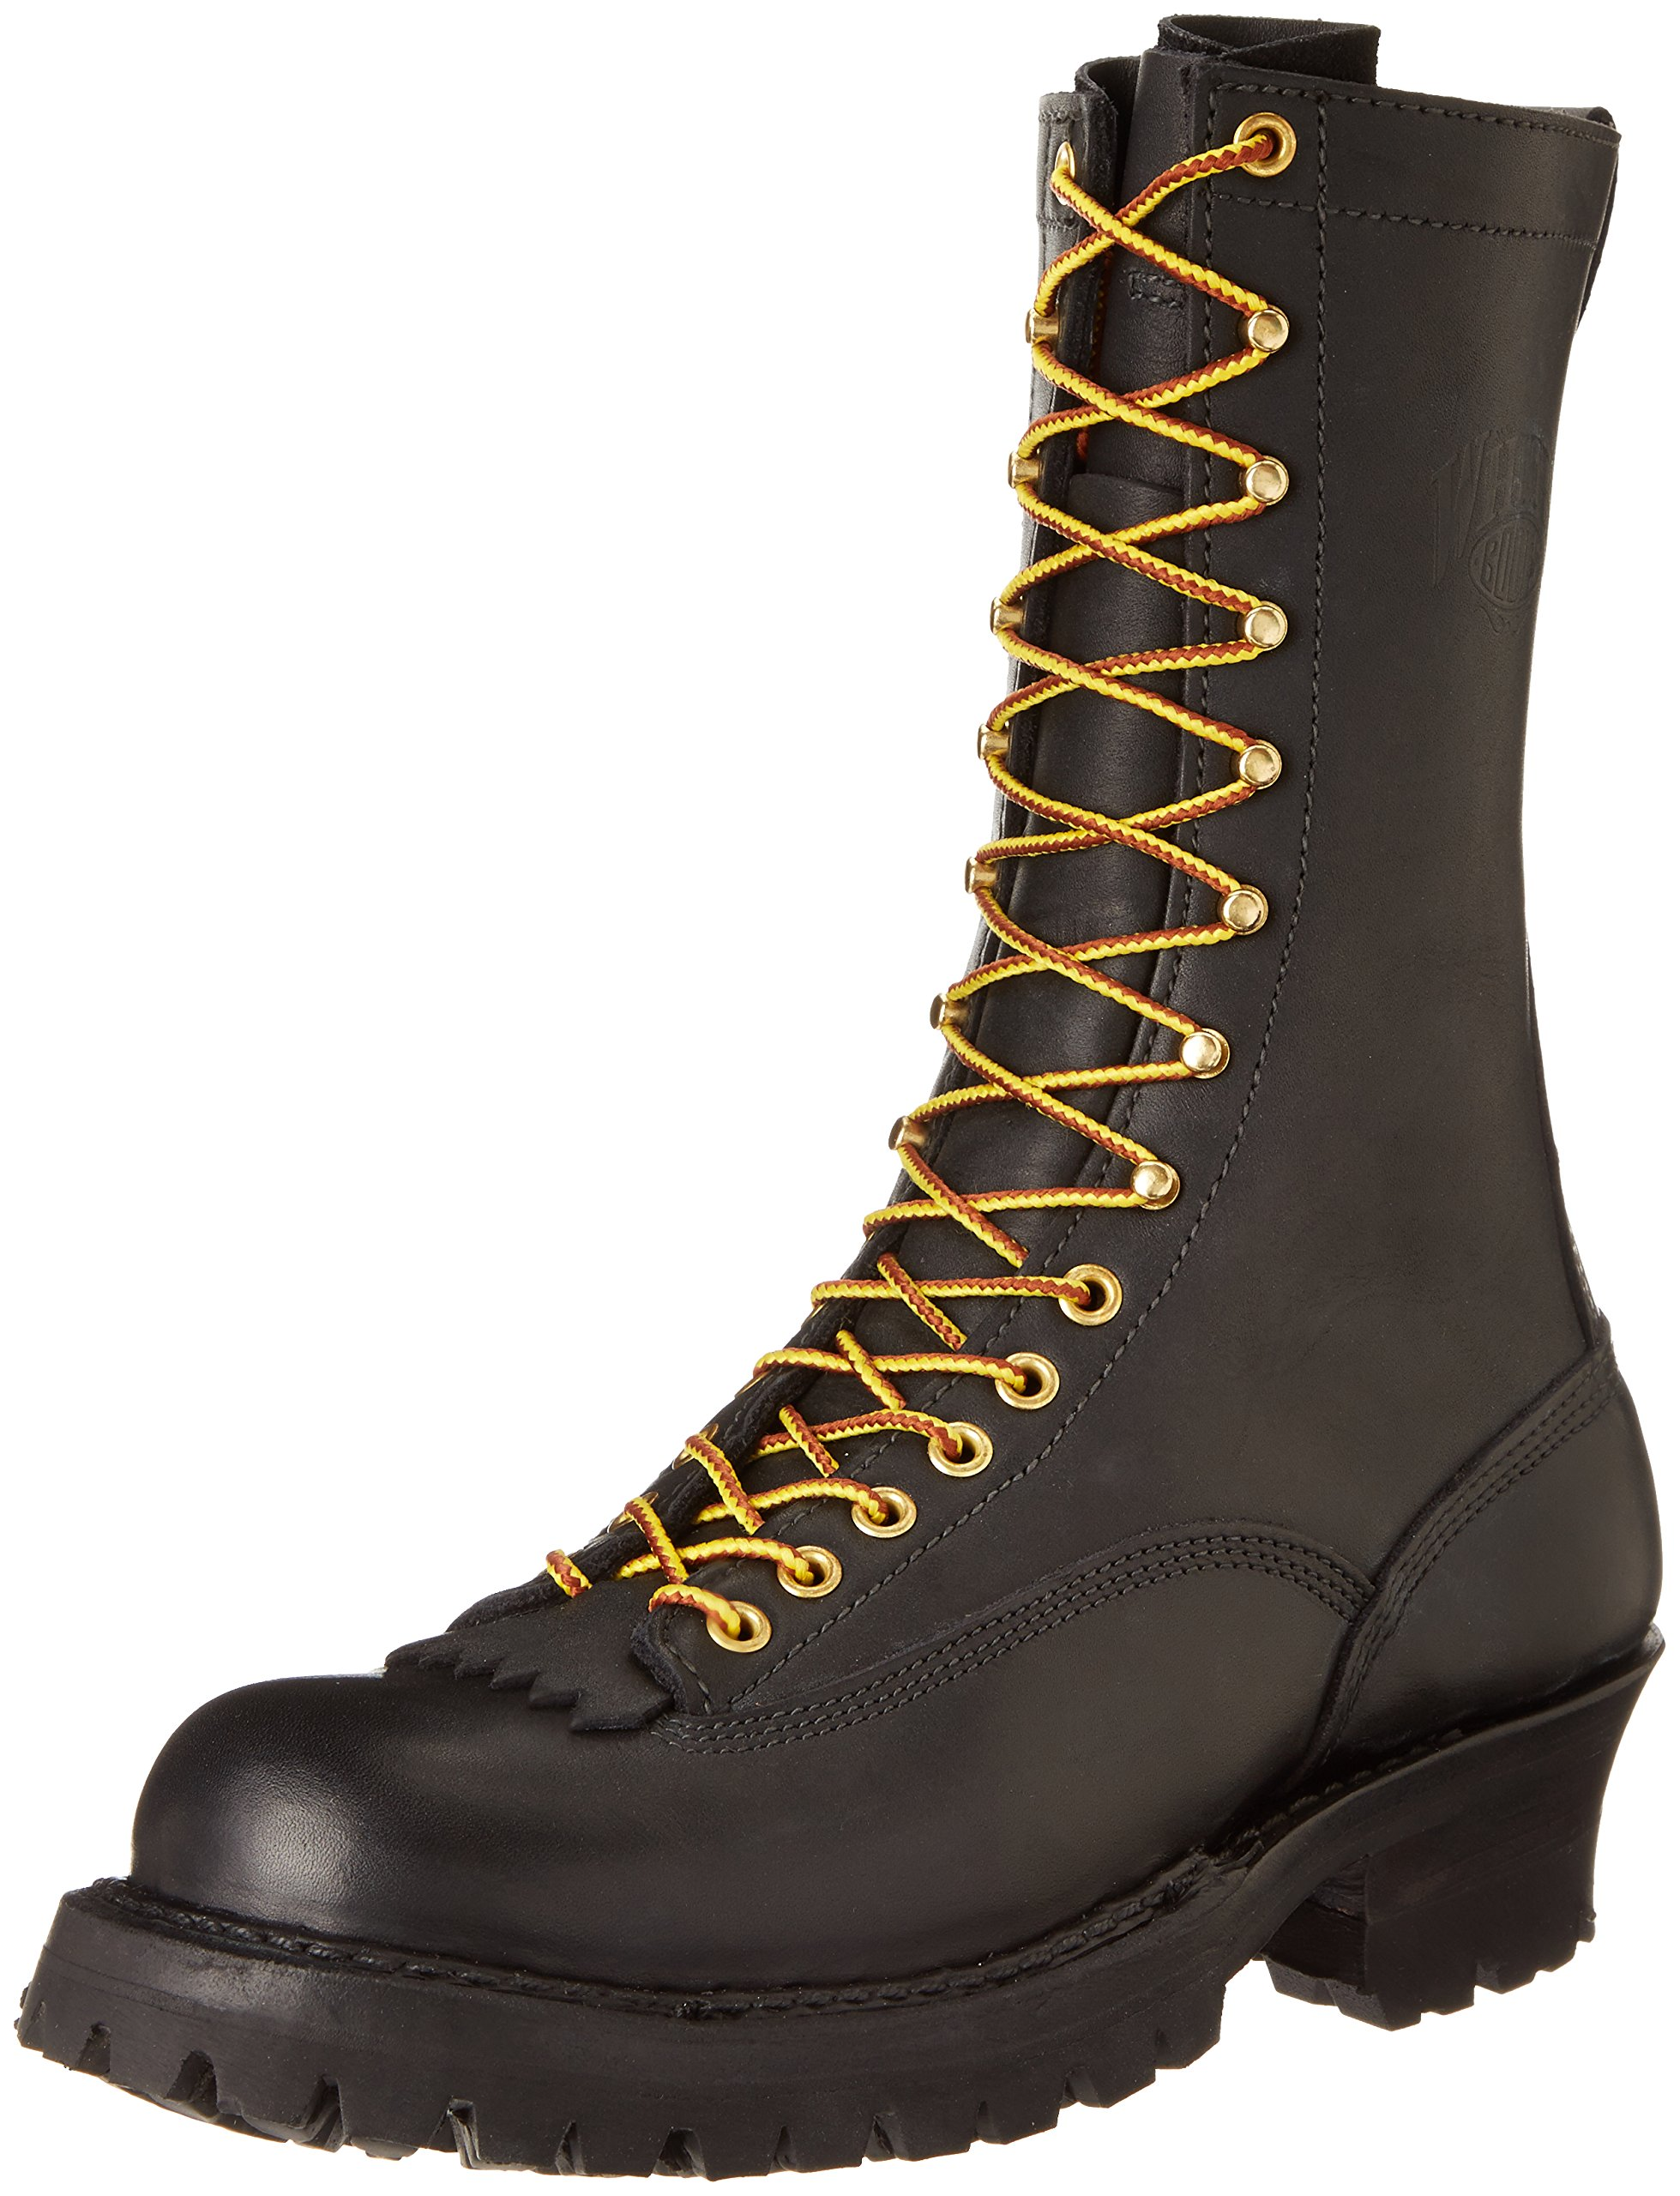 White's Boots Men's 400VLTT Smoke Jumper Lace-To-Toe Boot,Black,11.5 D US by White's Boots